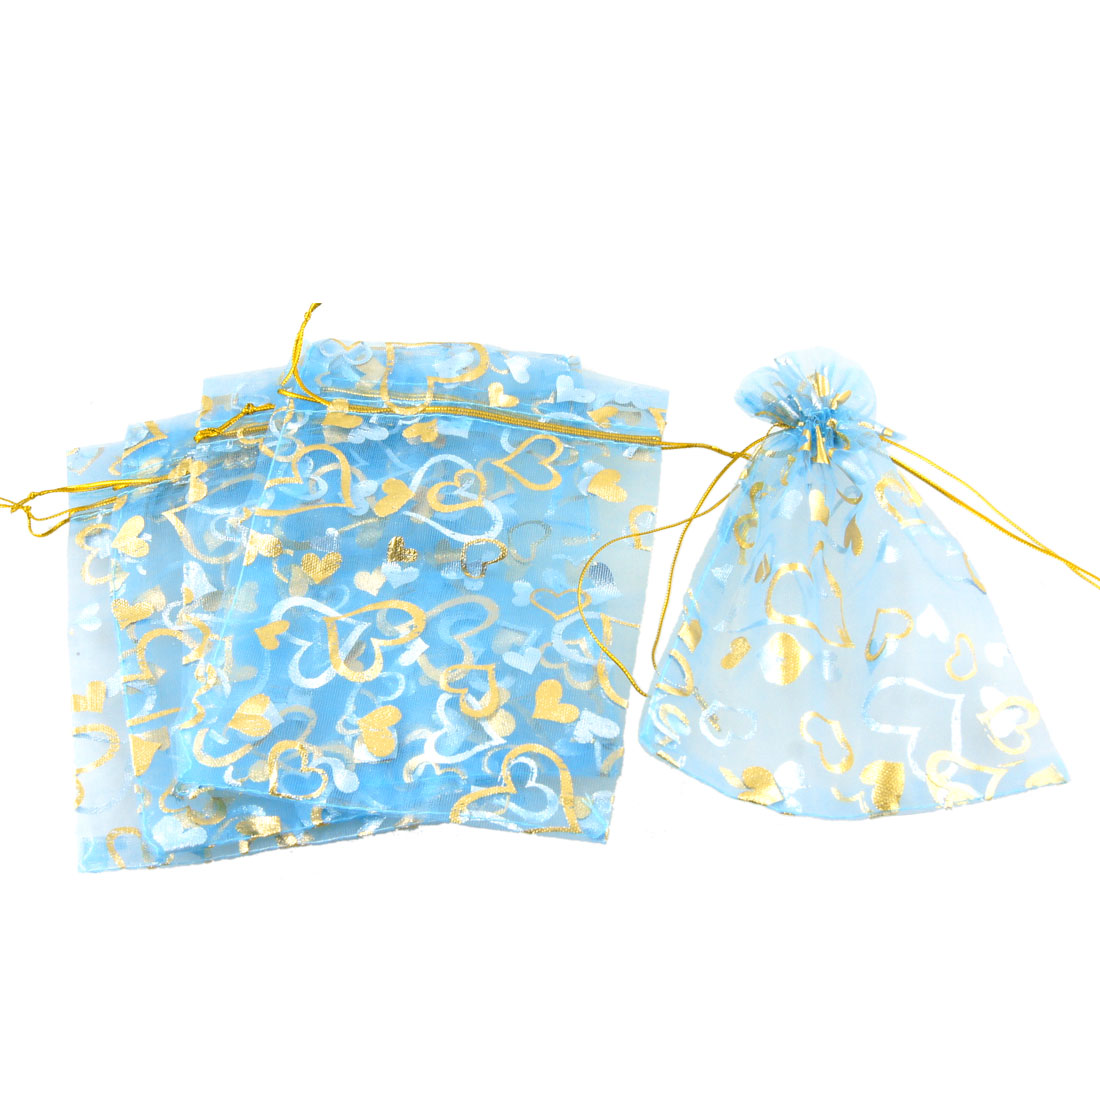 5 Pcs Gold Tone Heart Pattern Sky Blue Organza Wedding Candy Gift Bag Pouch